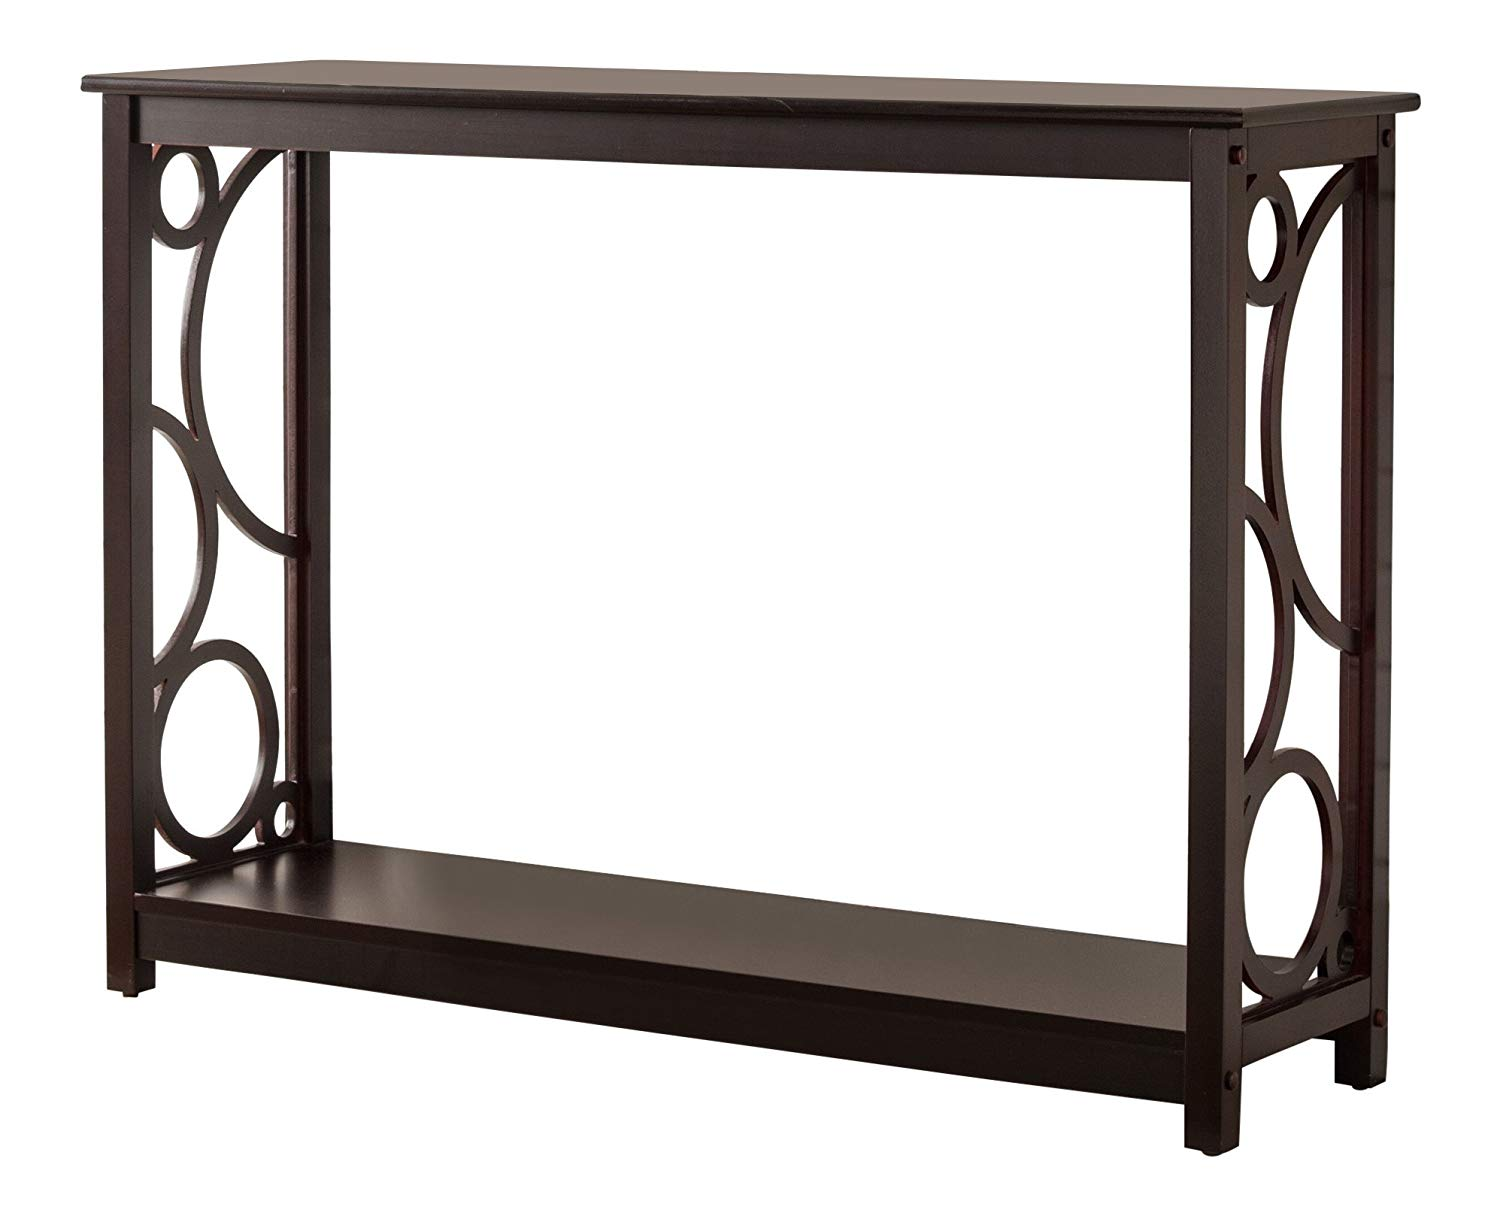 kings brand furniture cherry finish wood entryway monarch hall console accent table sofa kitchen dining teal chest comfy outdoor chair nesting nautical light fixtures indoor